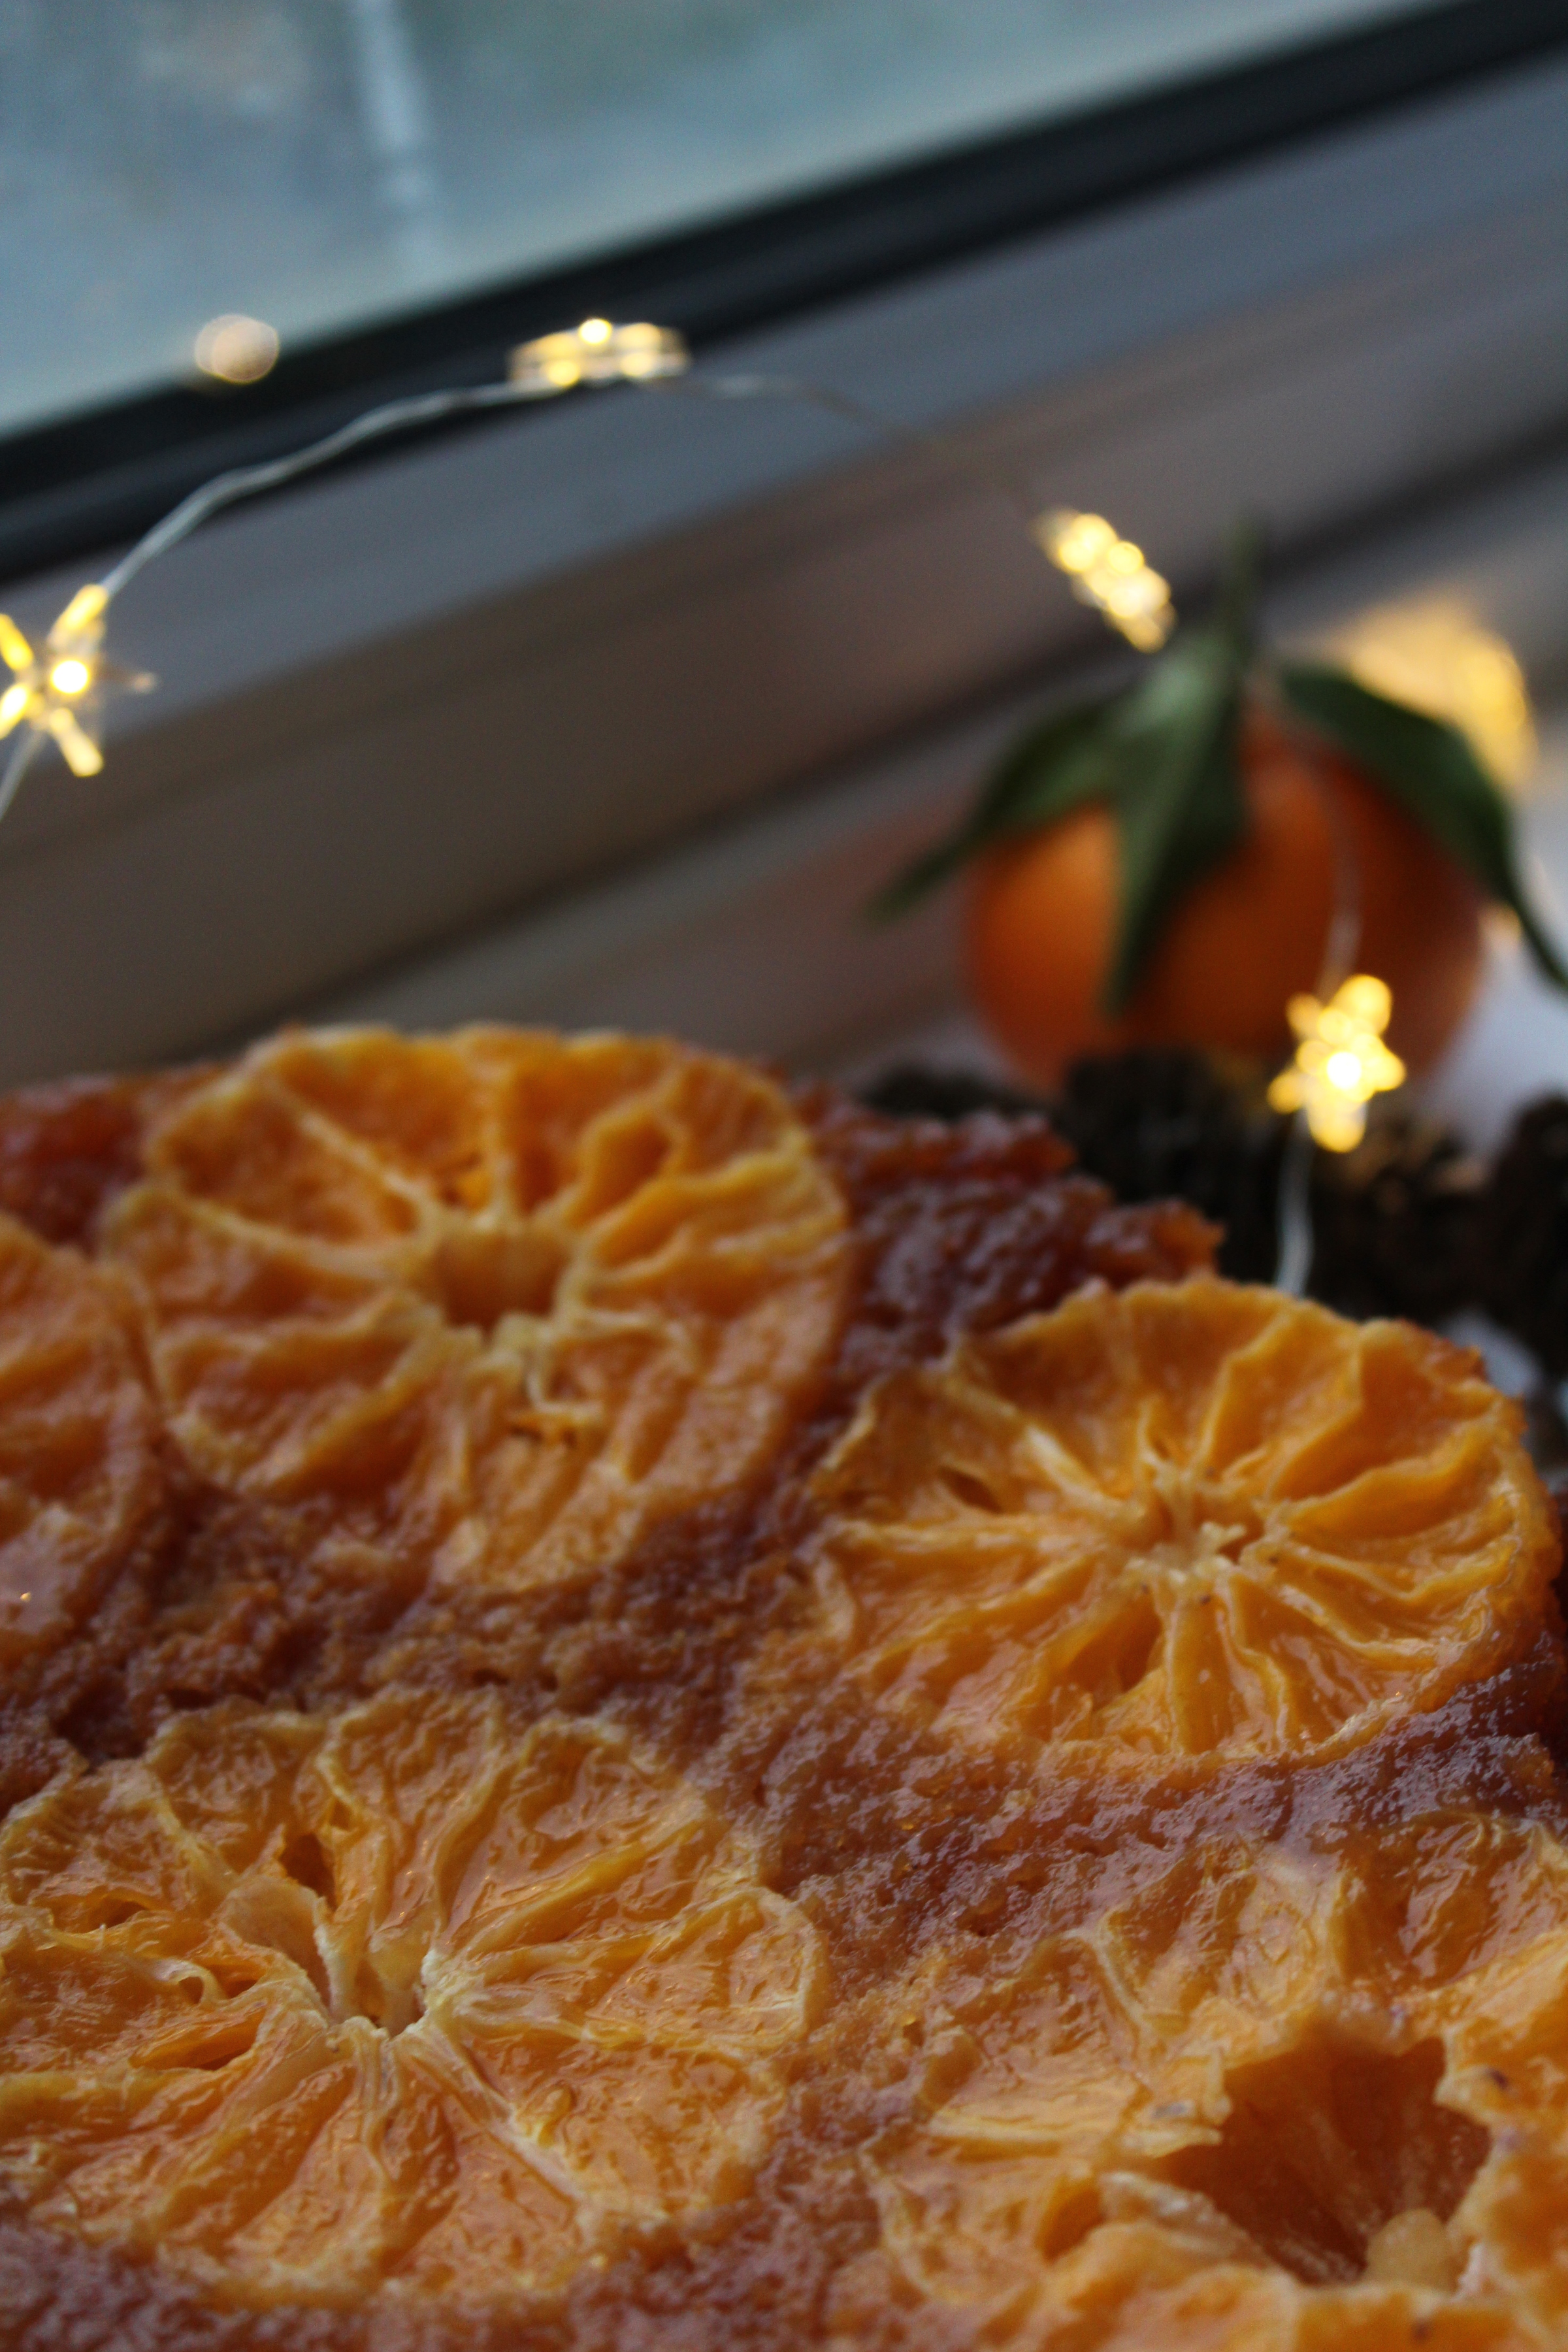 Clementine and Cardamom Upside-Down Cake